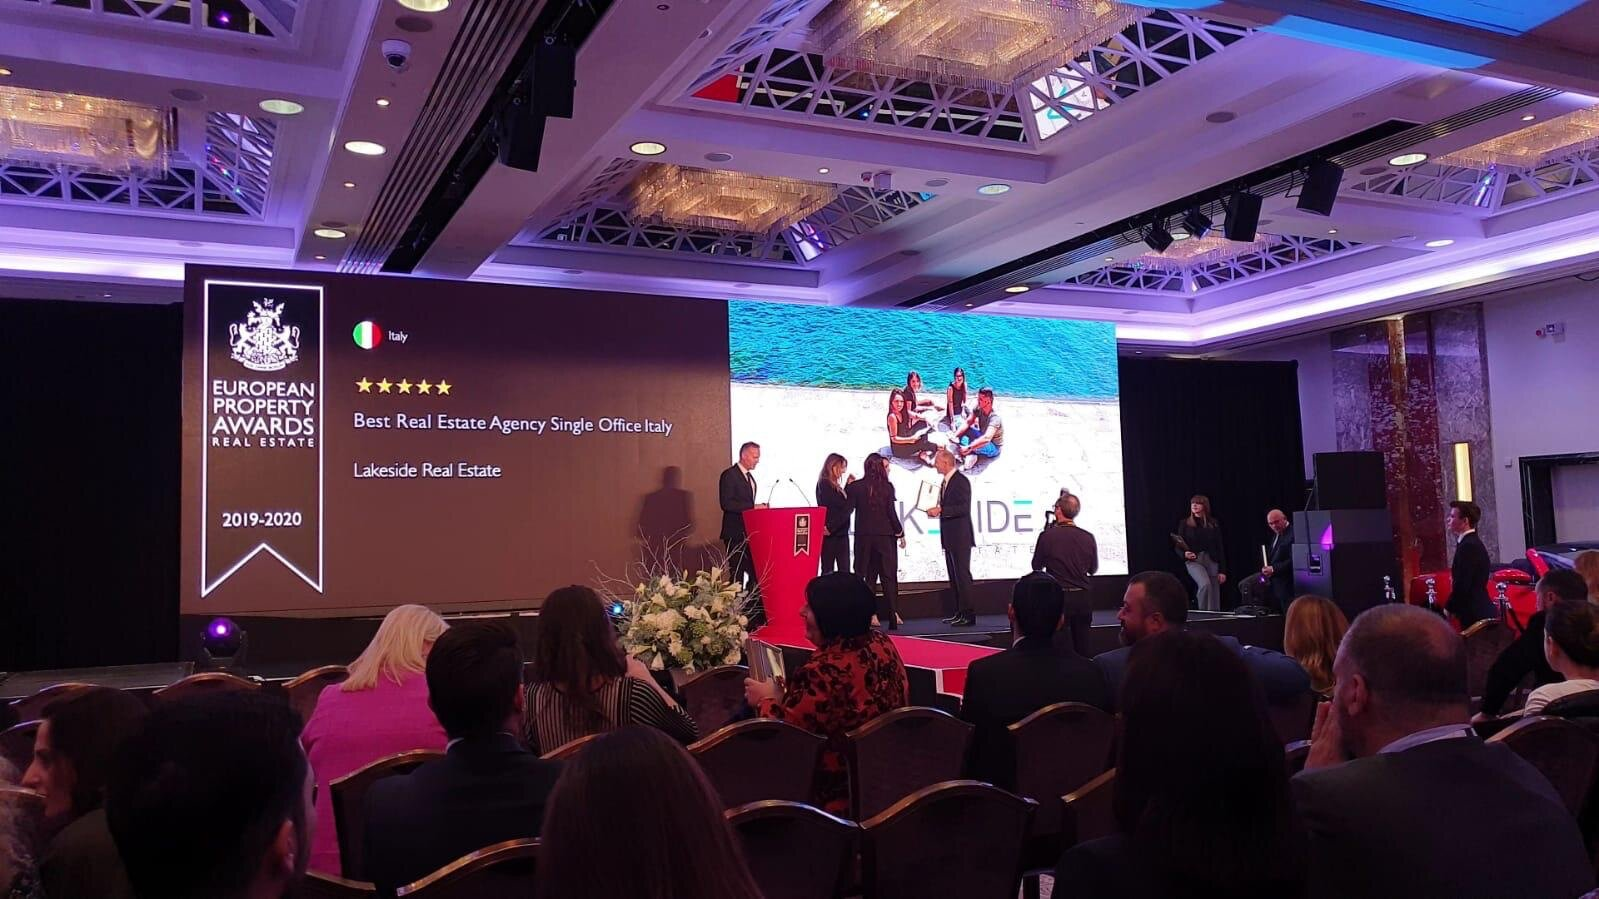 Lakeside Real Estate team on the stage during the award ceremony at the European Property Awards